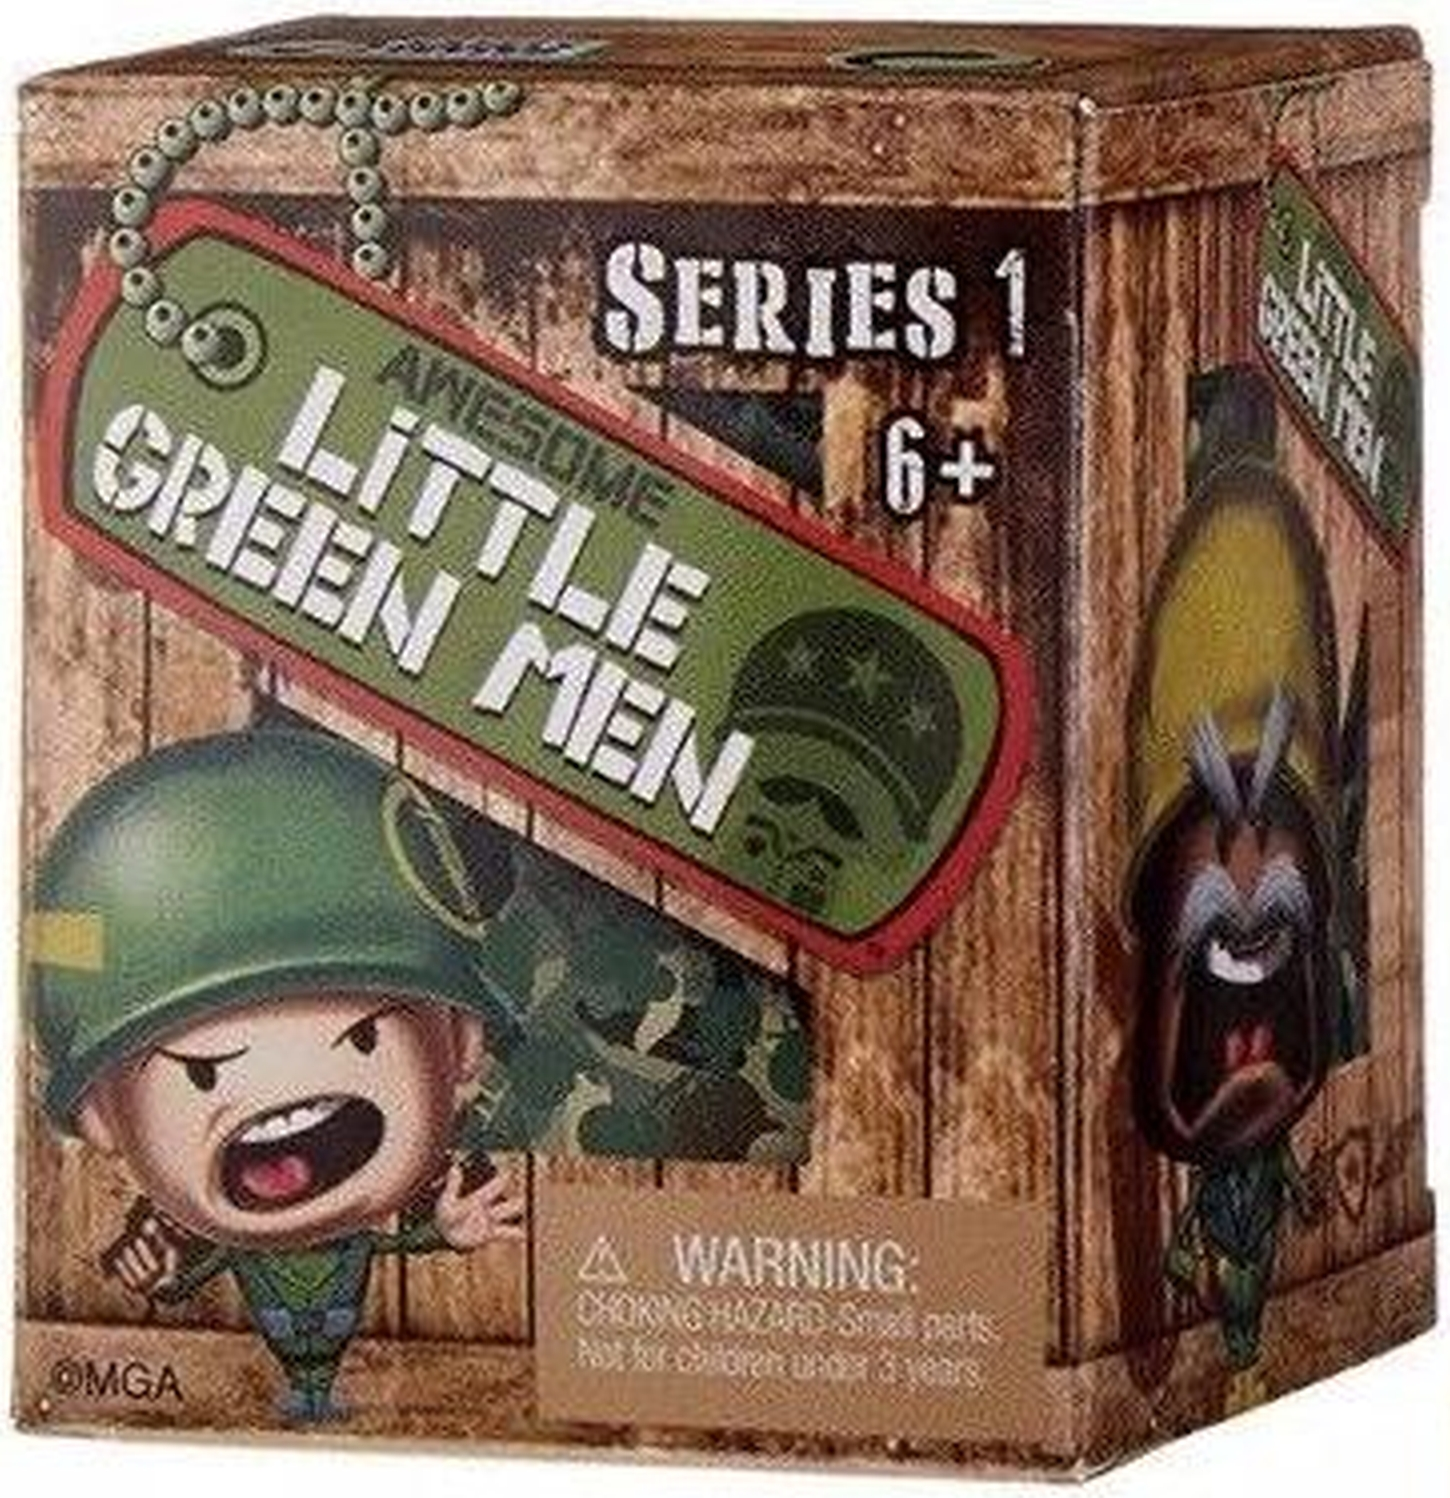 Awesome Little Green Men Series 1 Blind Box 2 inch Figure - 11045-10982CCCVFM